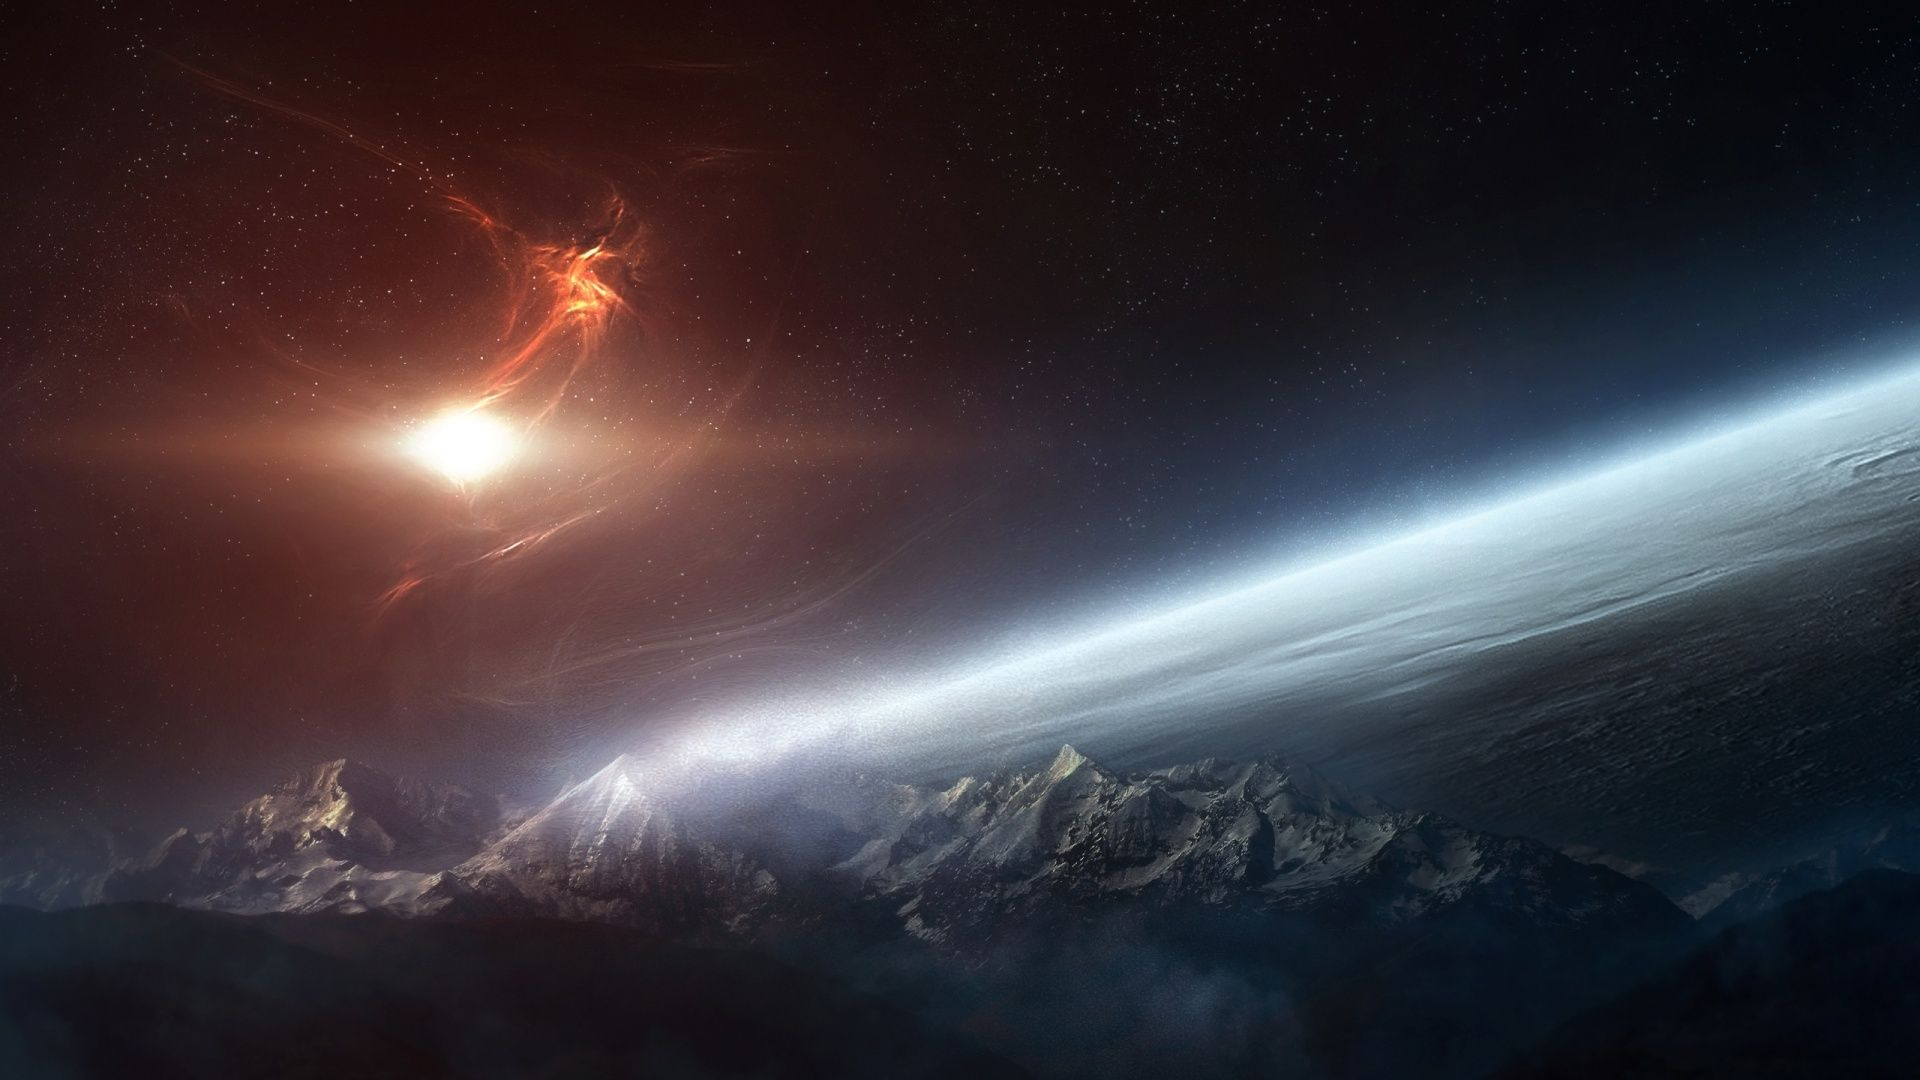 Space Pc Wallpapers Top Free Space Pc Backgrounds Wallpaperaccess